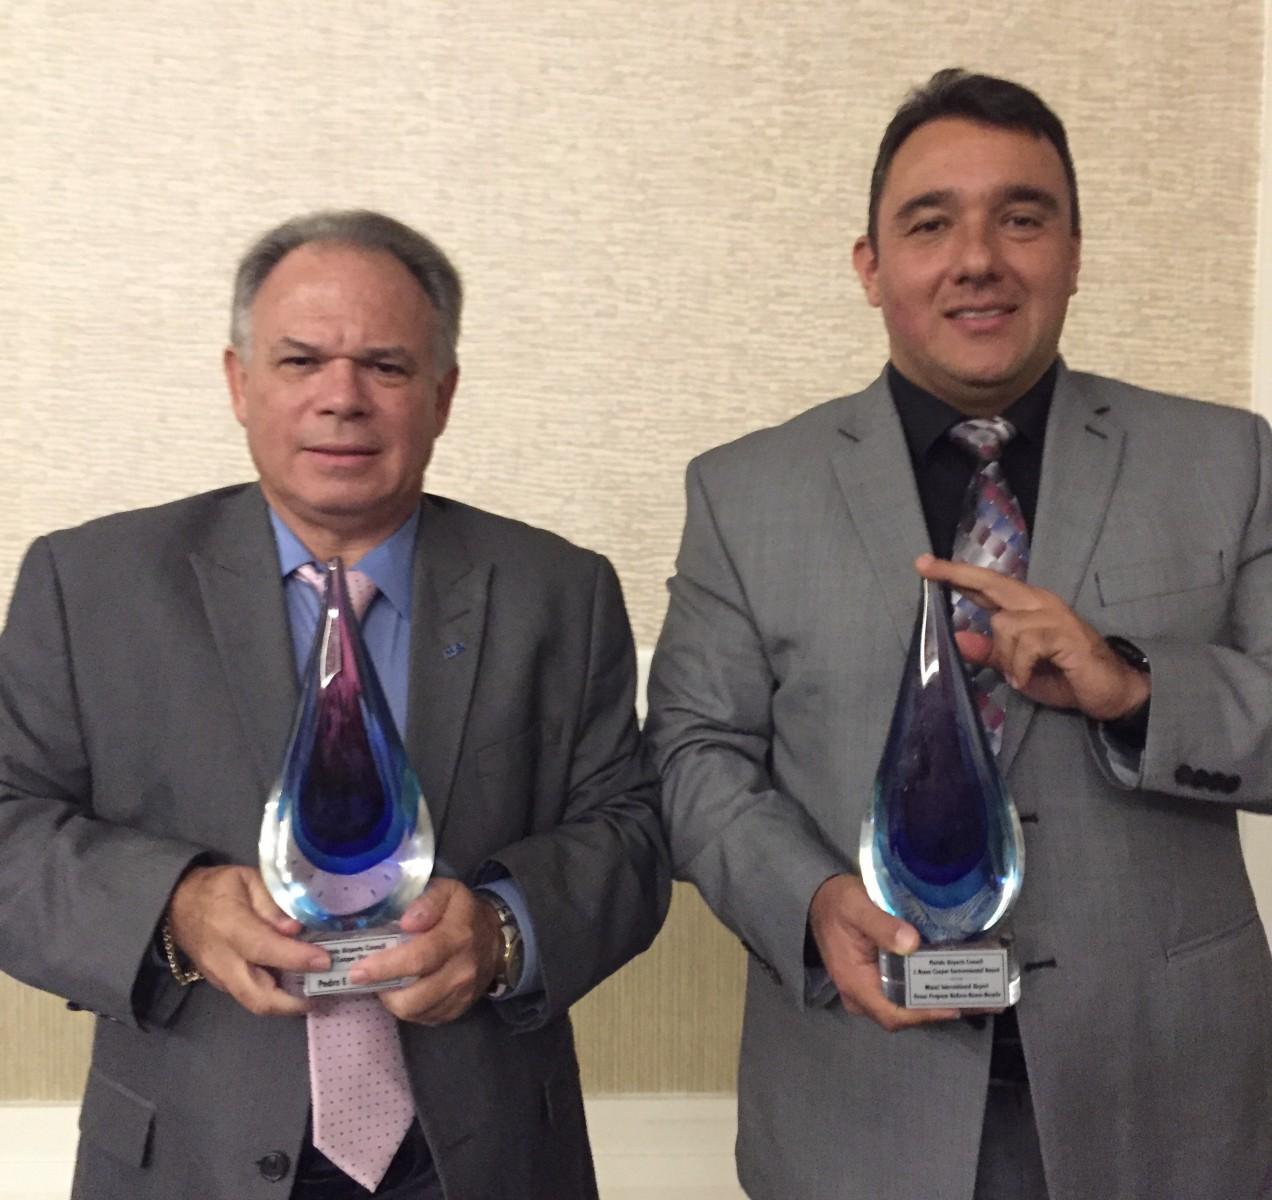 MIA wins two awards for environmental conservation from the Florida Airports Council